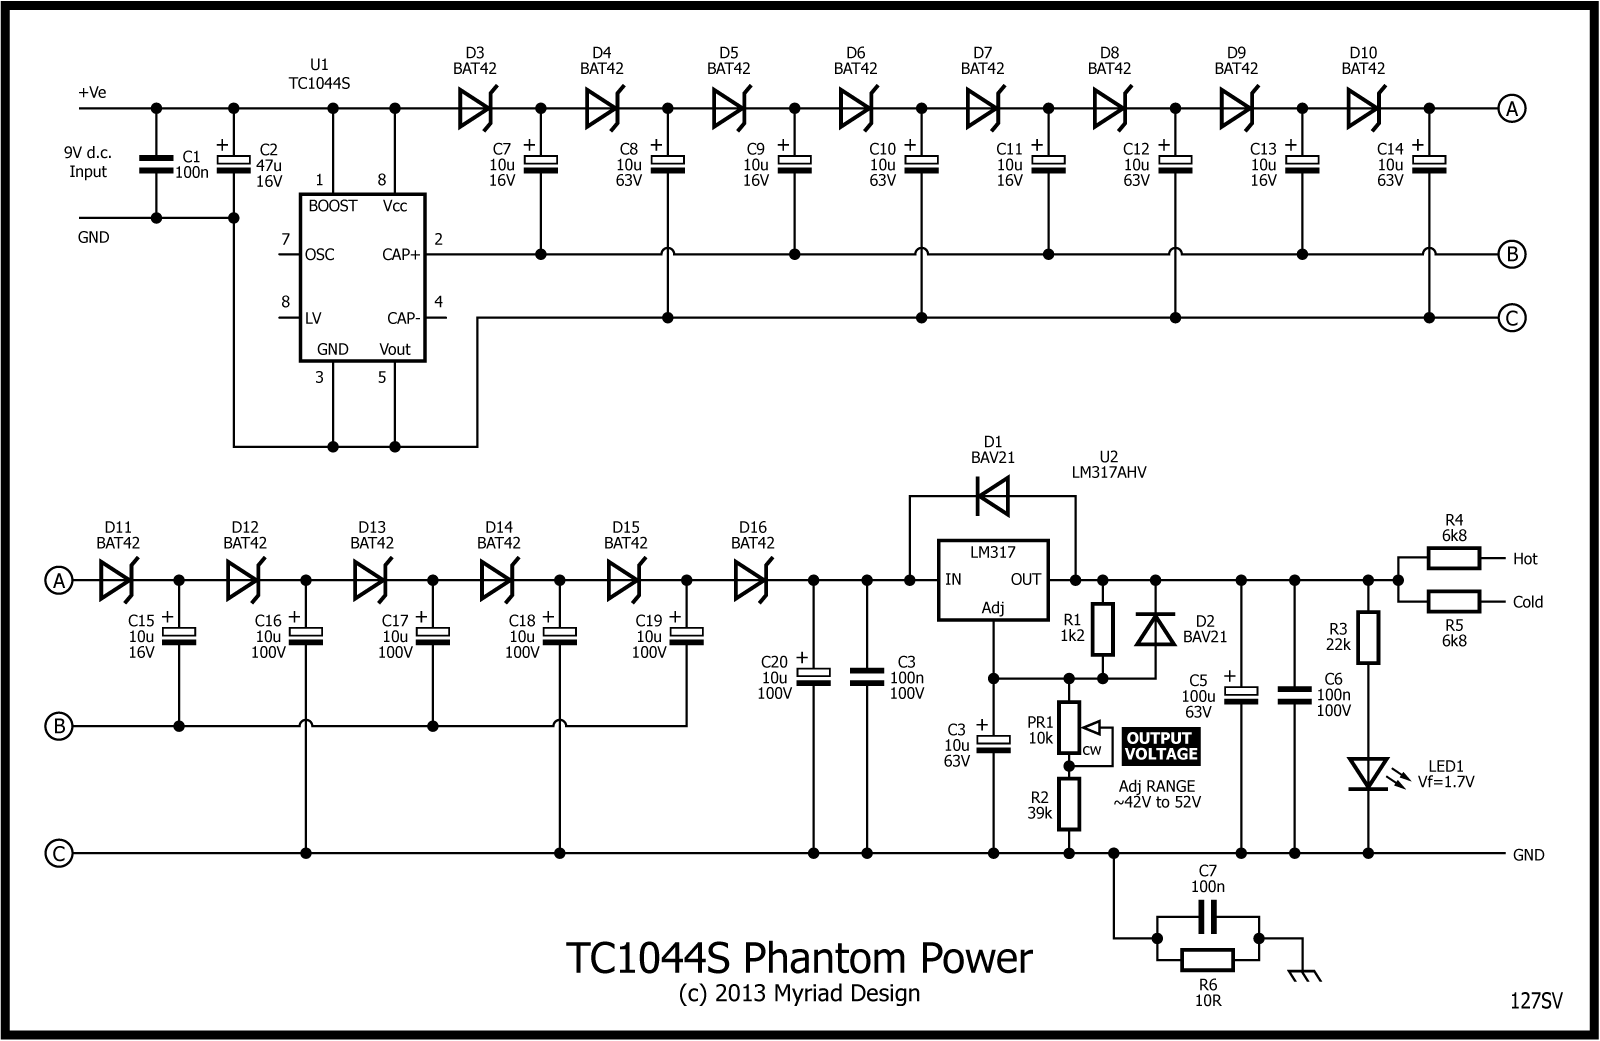 12 0 12 Step Down Transformer 02  ere also Z80 intro also How To Make A Buzzer Produce A Warbling Sound as well Battery Charger 12 Volt Inchbuilt In Inch 170409 furthermore Simple Automatic Street Light Circuit Diagram. on 9 volt battery led circuit